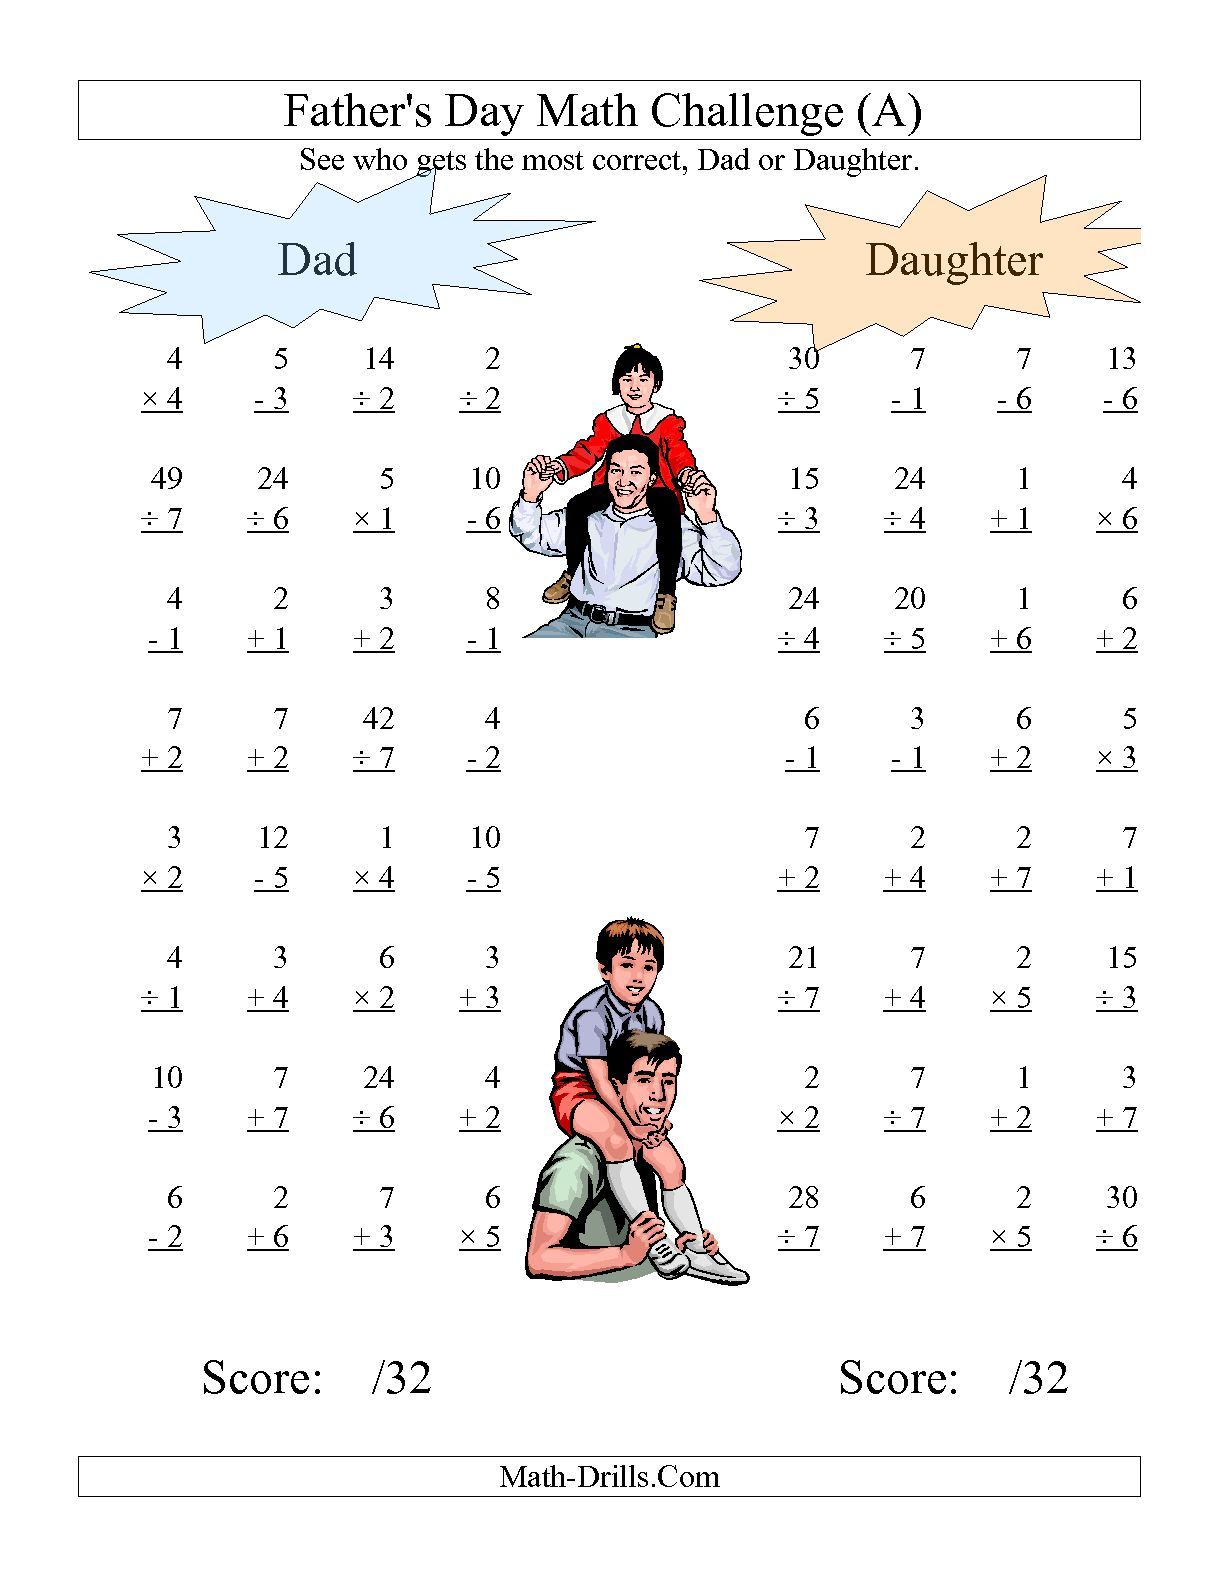 Pin By Meher Khan On Activities Father S Day In 2021 Math Worksheets Holiday Math Worksheets Math